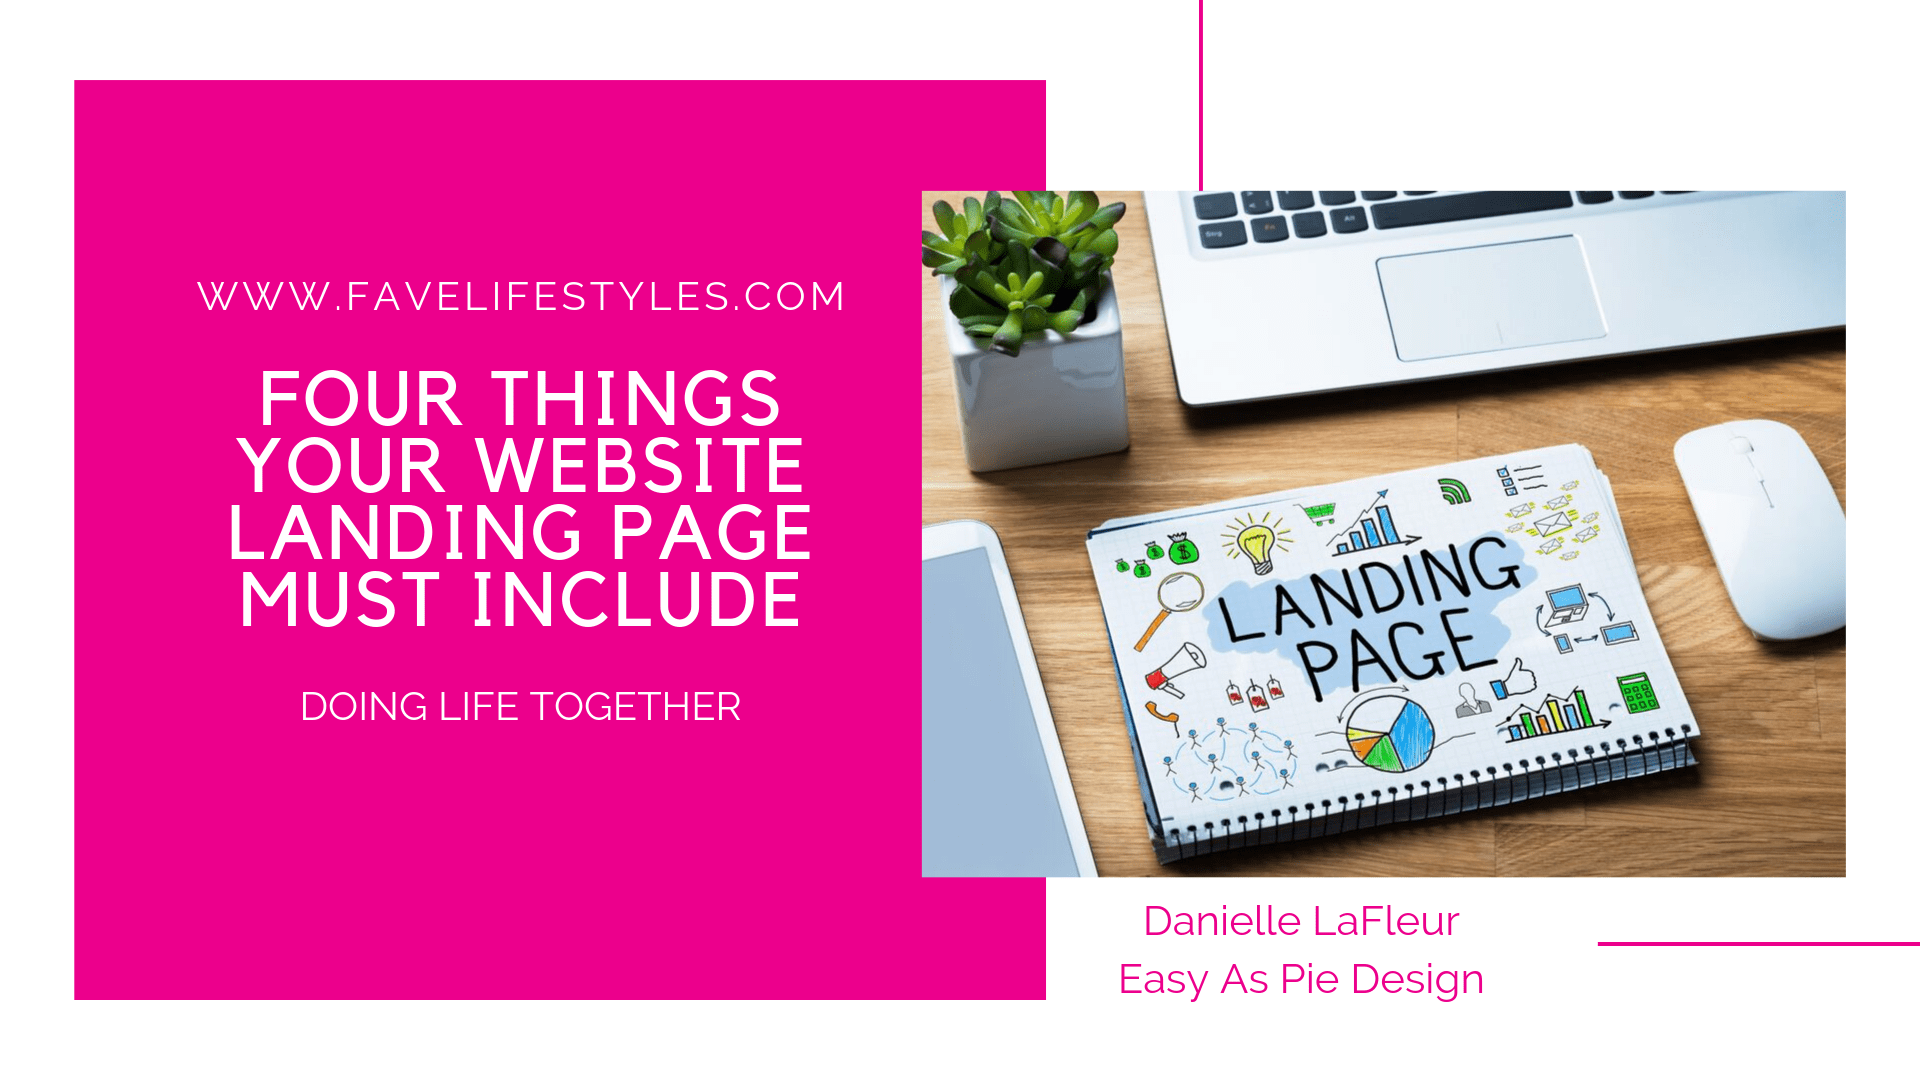 Four Things Your Website Landing Page MUST Include